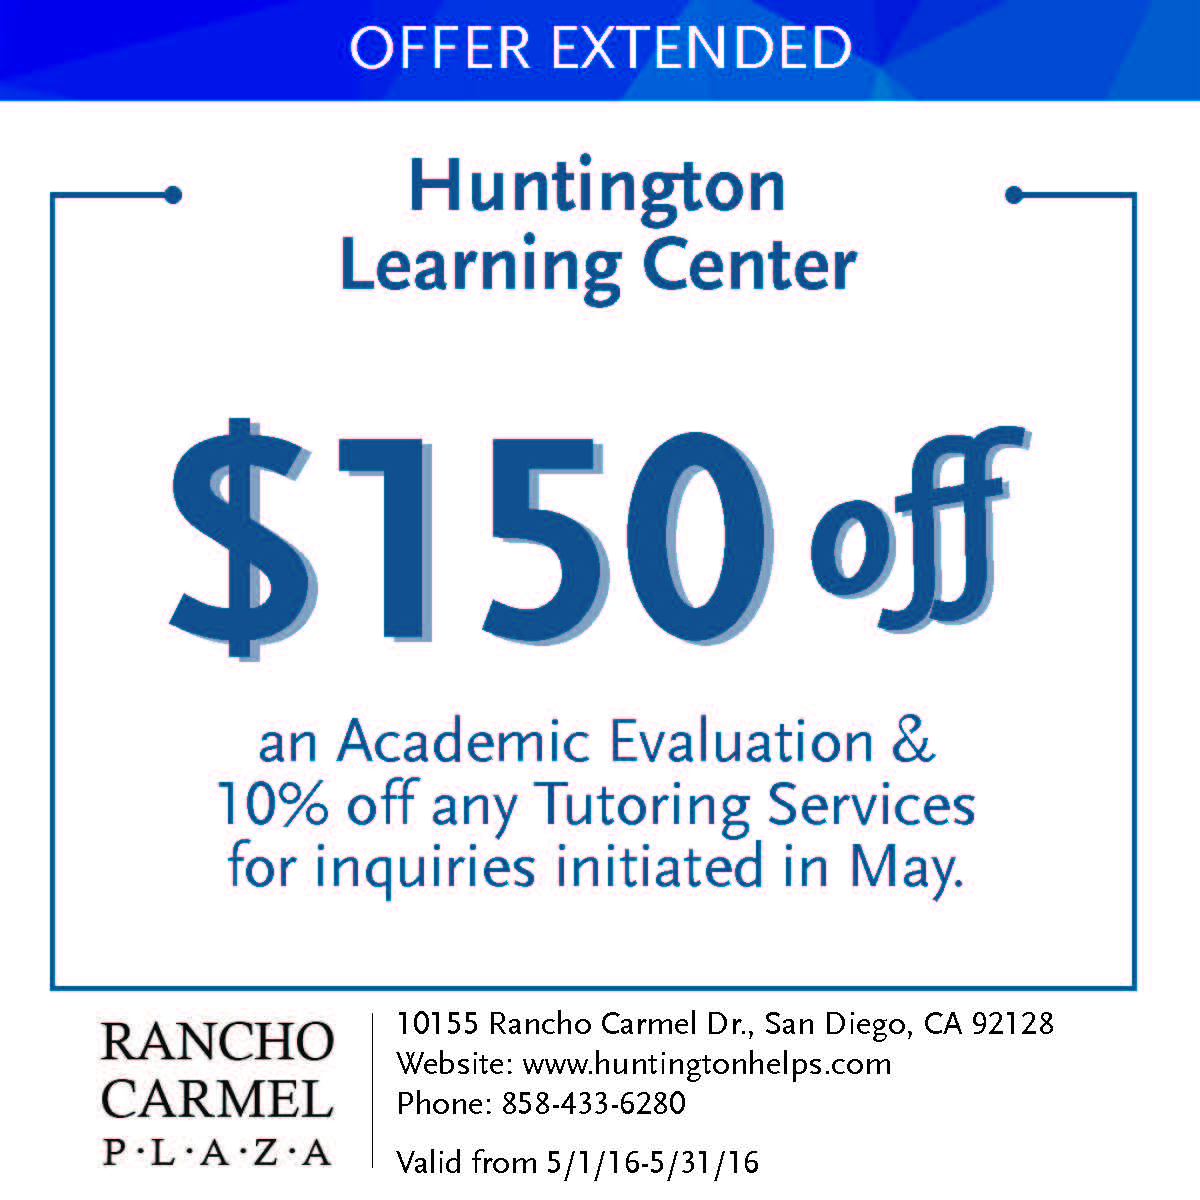 Carmel coupon code